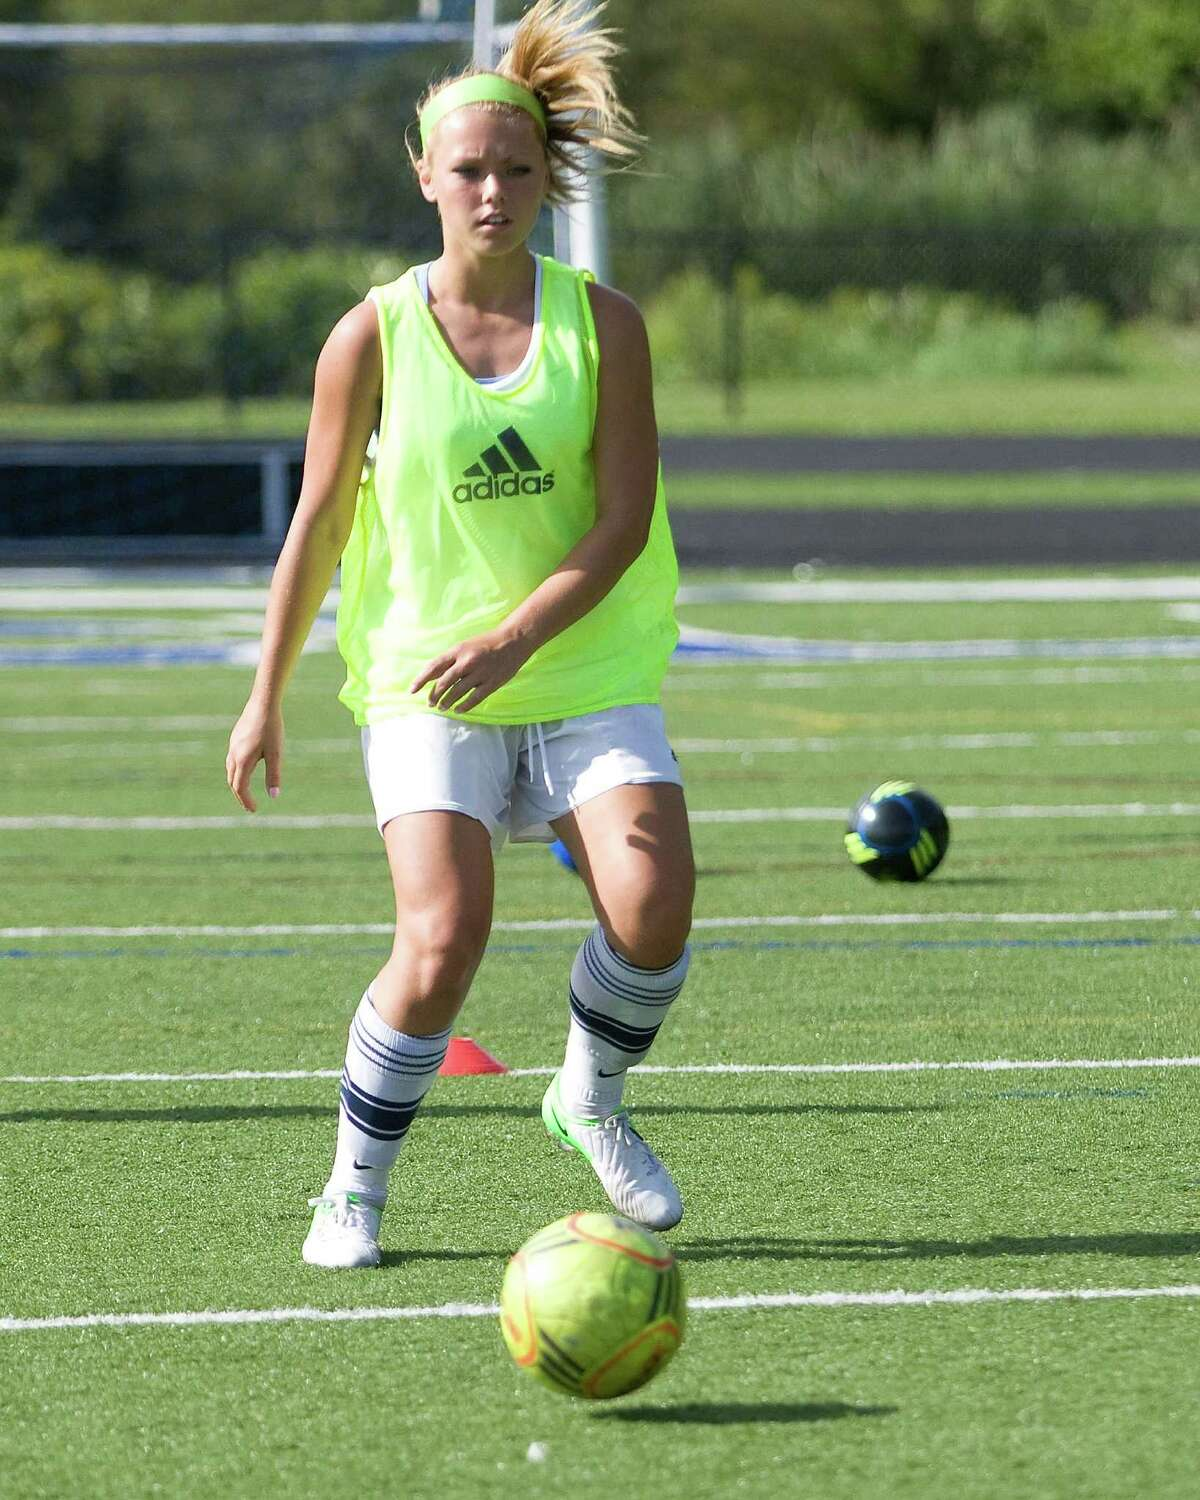 Immaculate's Lindsey Josseck works on a passing drill during practice Monday at Immaculate High School.